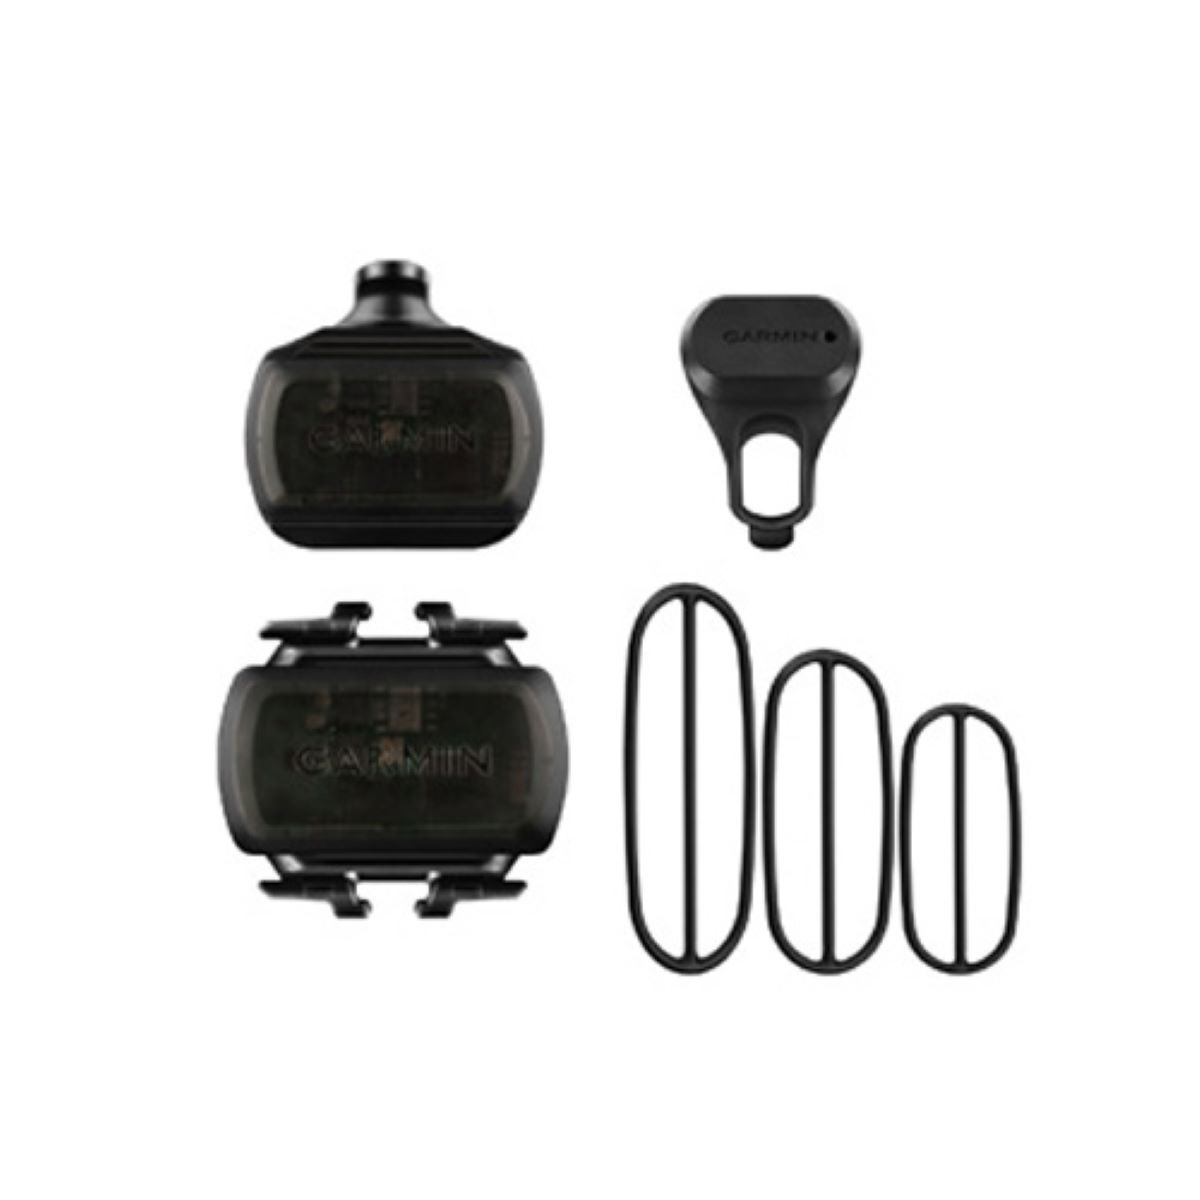 Garmin Speed & Cadence Sensor   GPS Cycle Computers